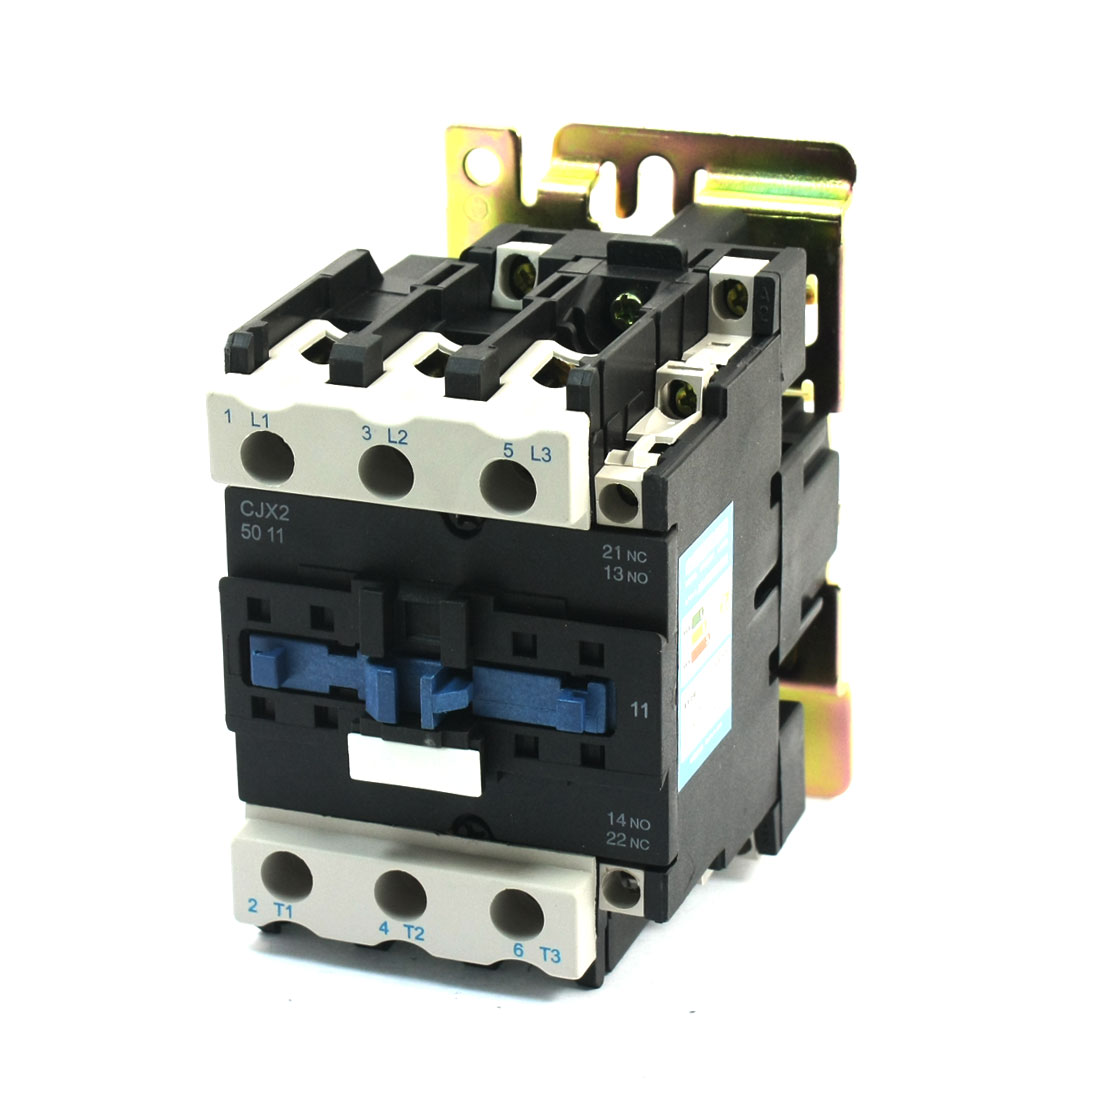 CJX2-5011 General Purpose 3 Phase 380V Coil 70A 1NO 1NC AC Contactor